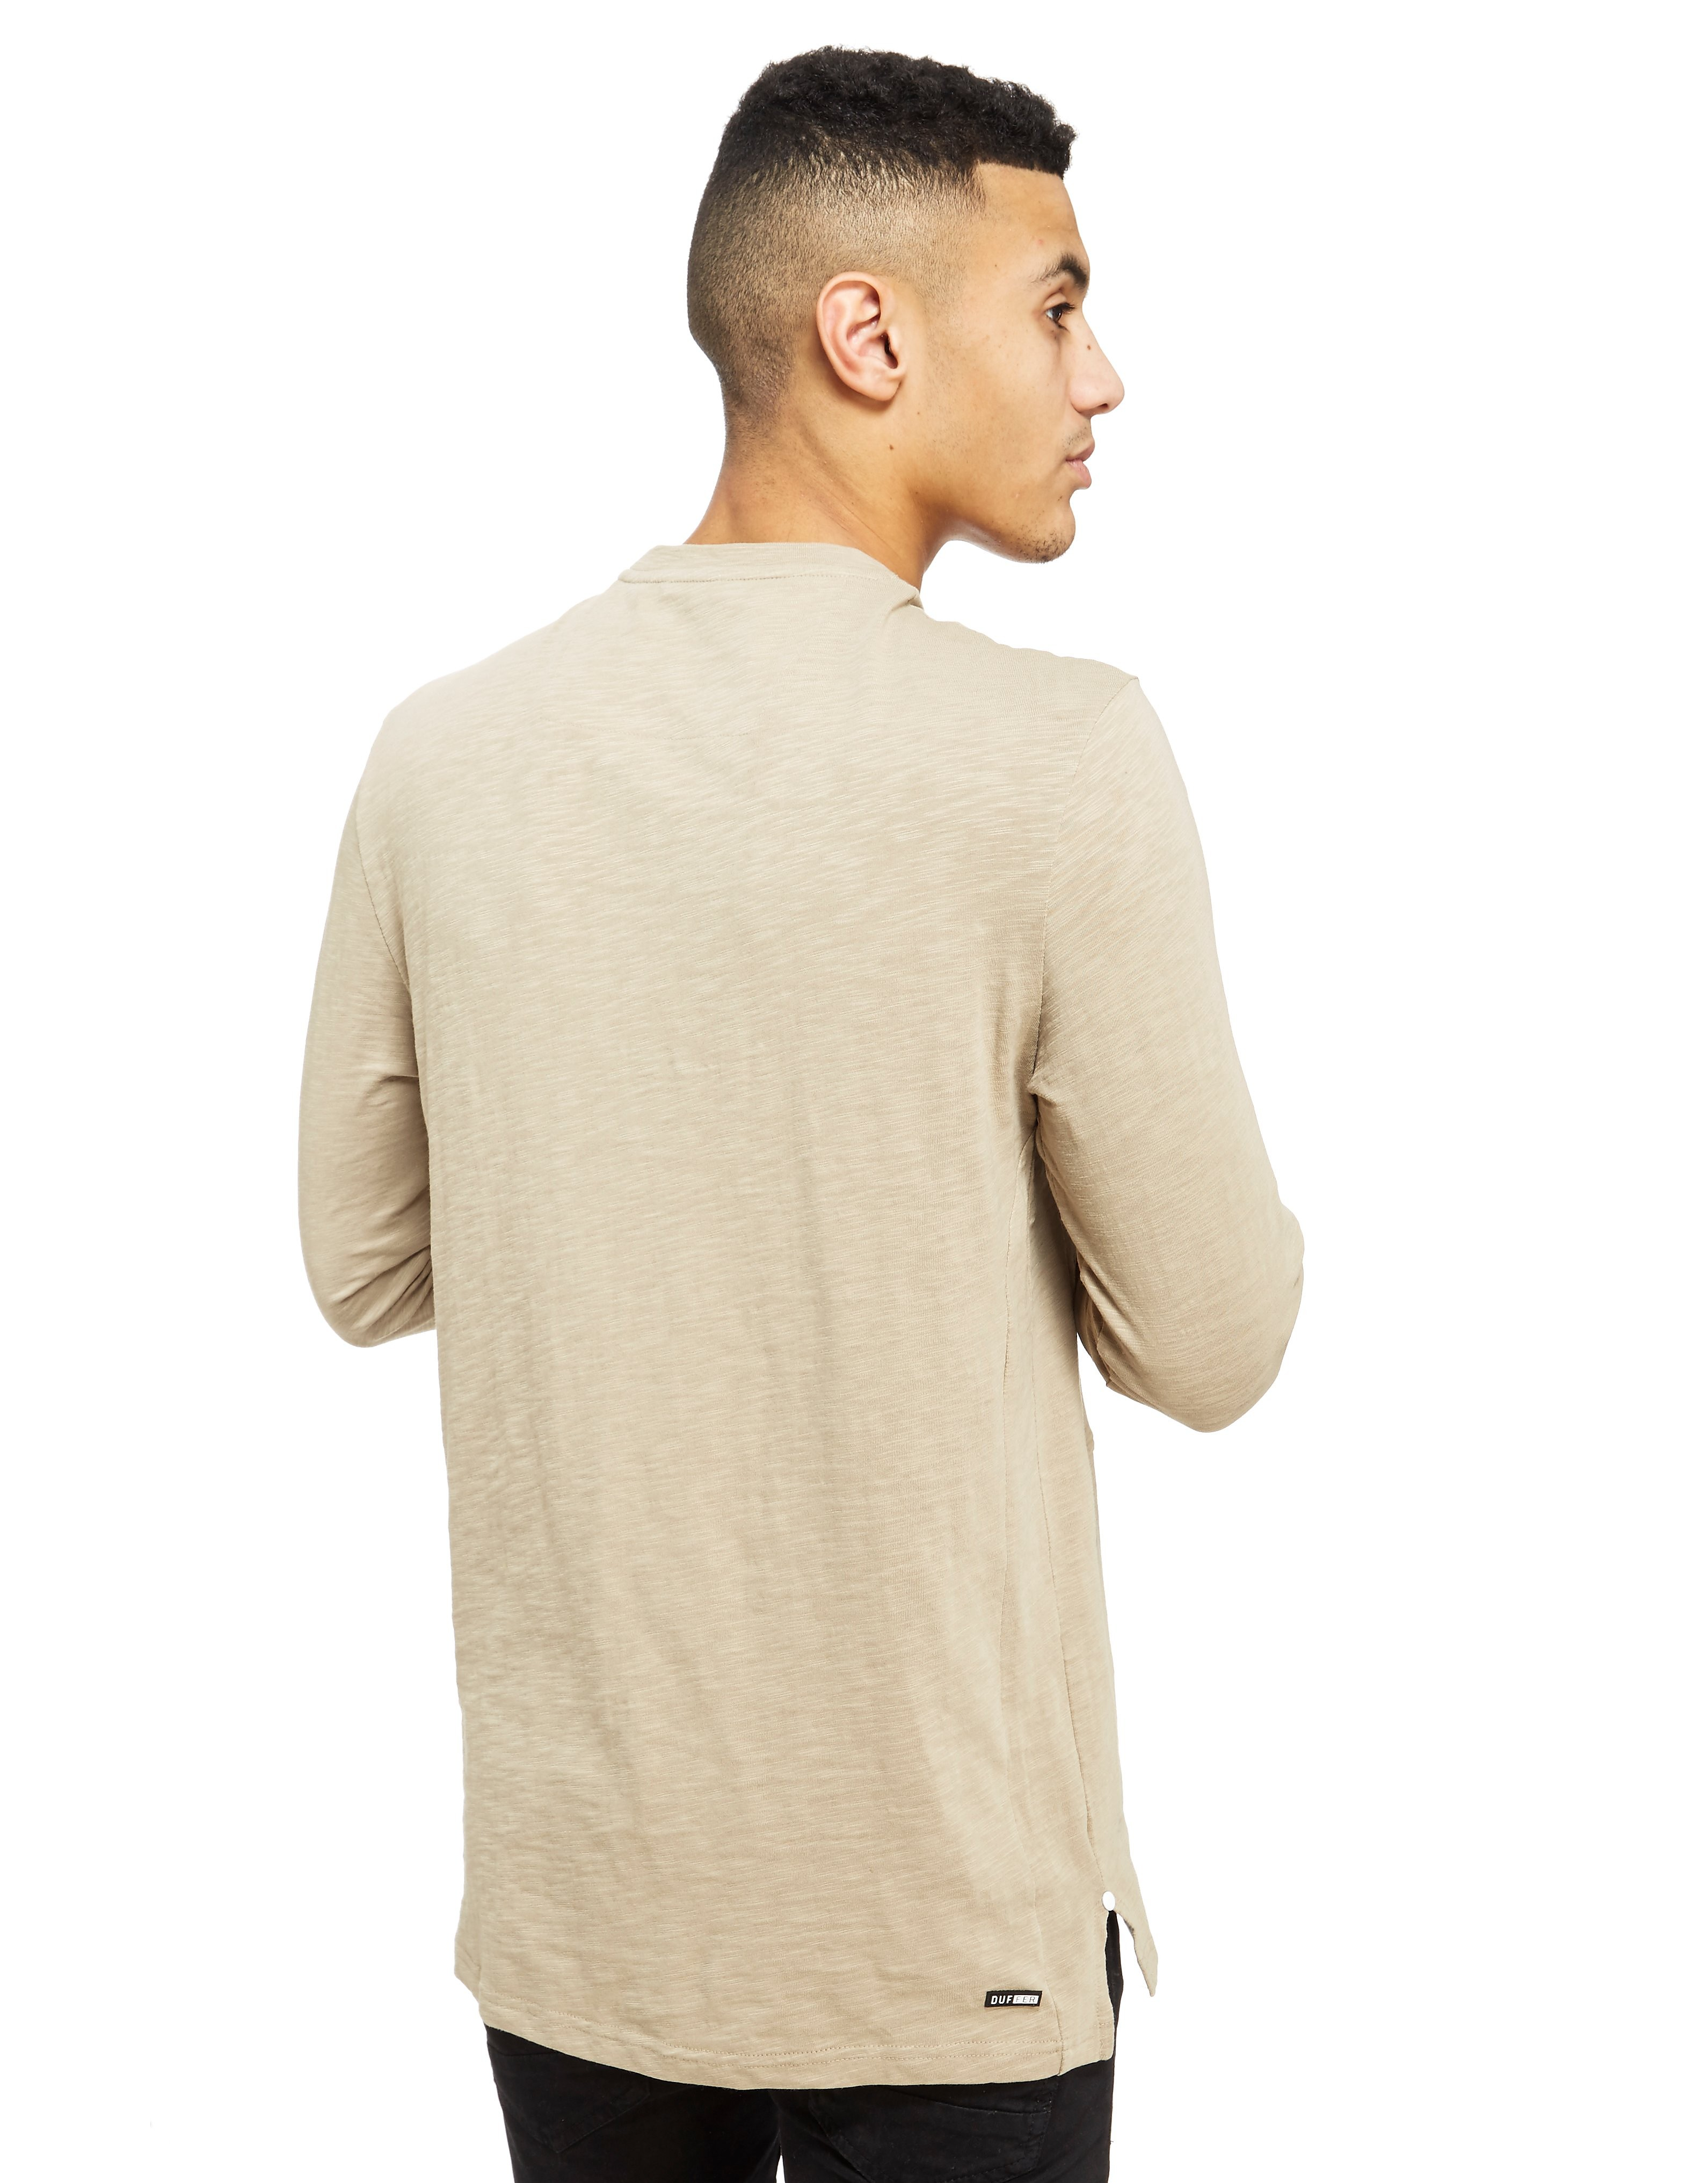 Duffer of St George Resource Long Sleeve T-Shirt